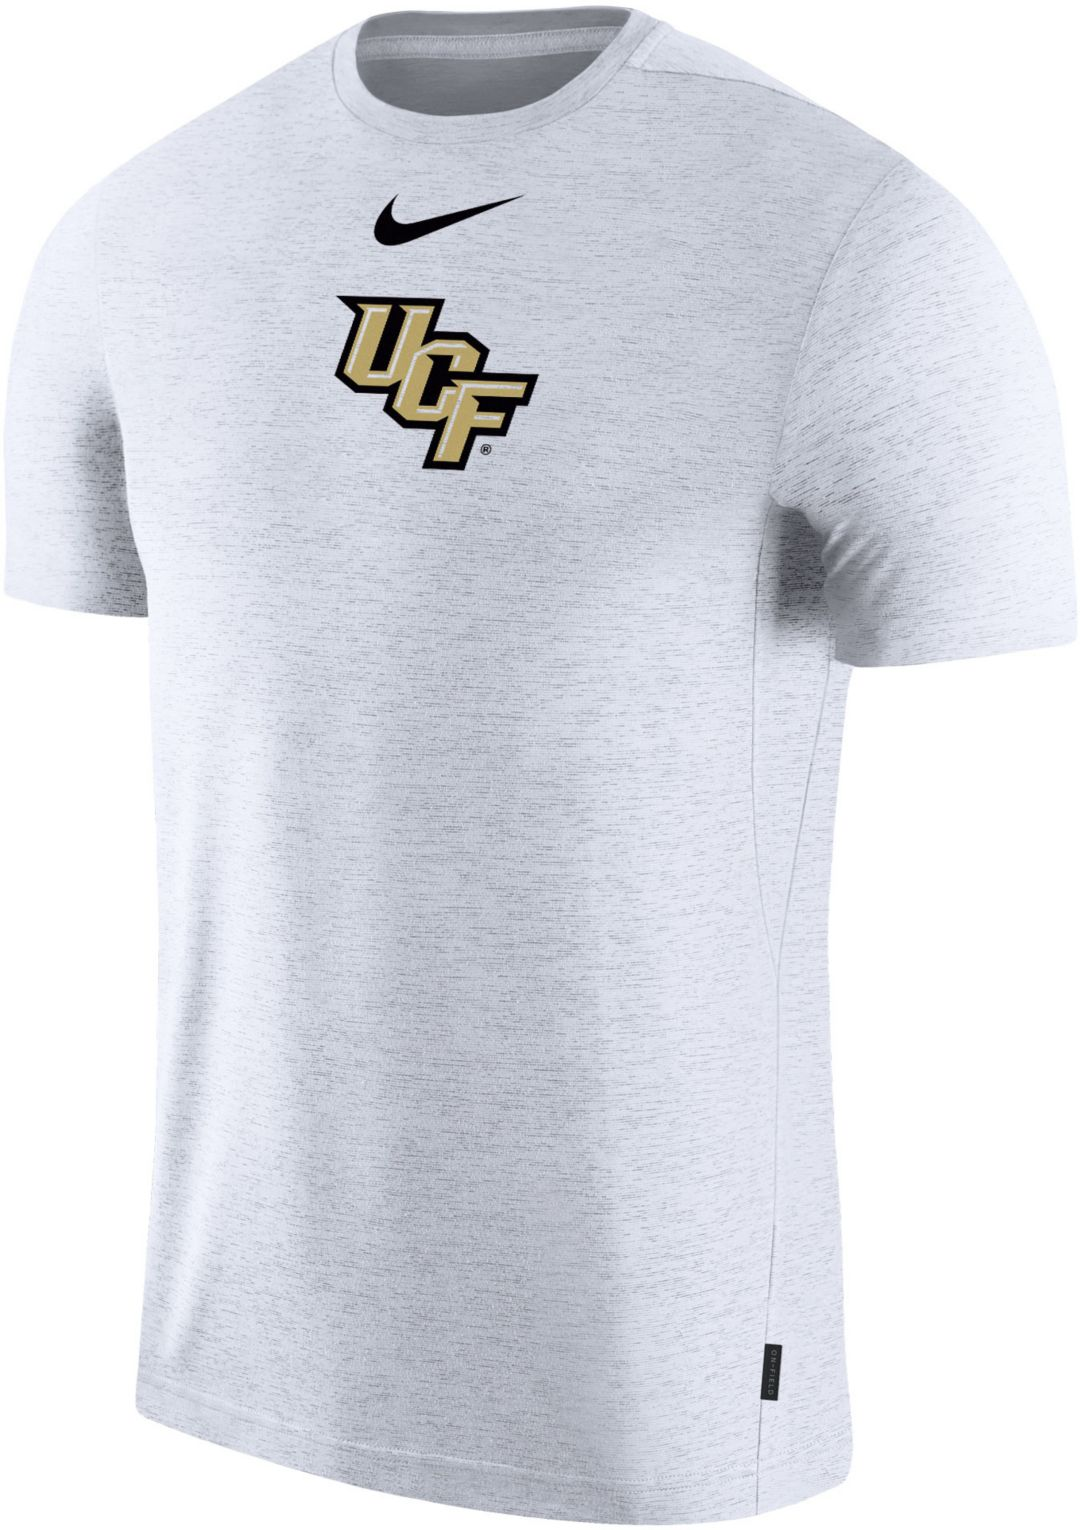 hot sale online be507 d1376 Nike Men's UCF Knights Dri-FIT Coach Football White T-Shirt